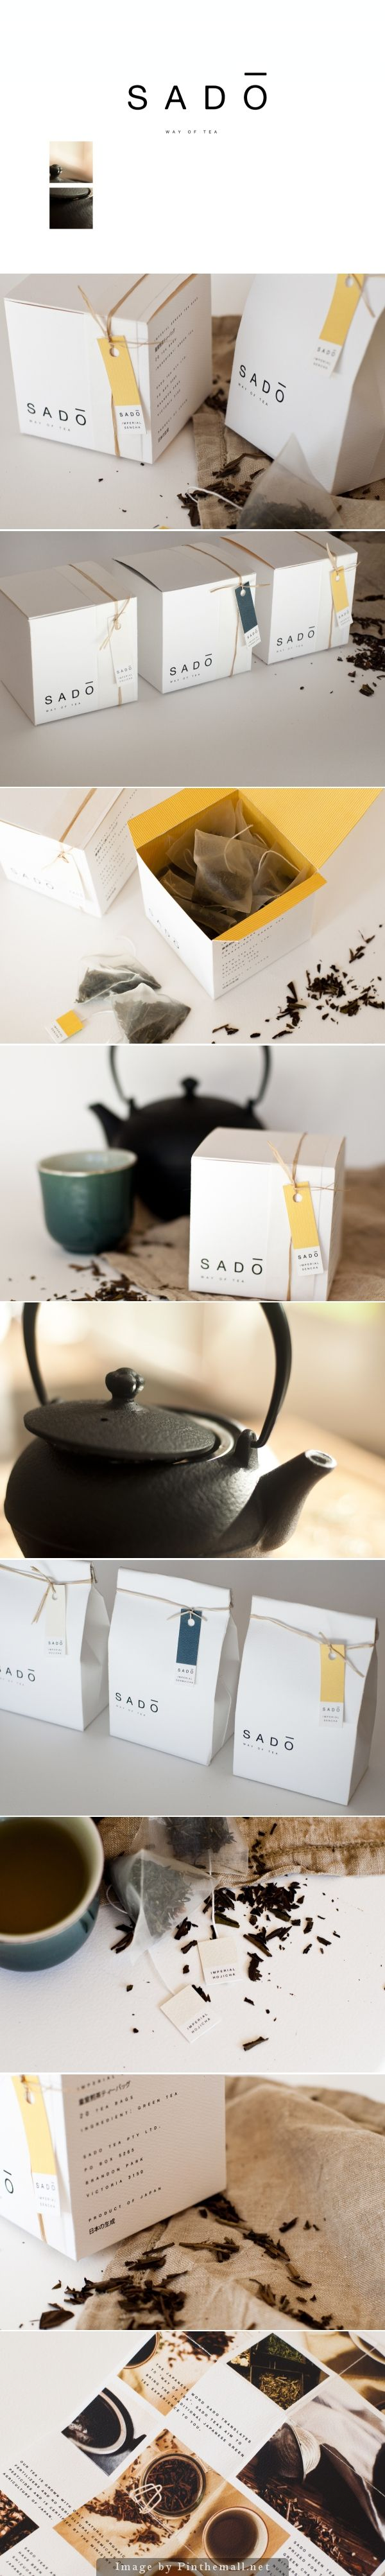 Tea #packaging. Sado brand